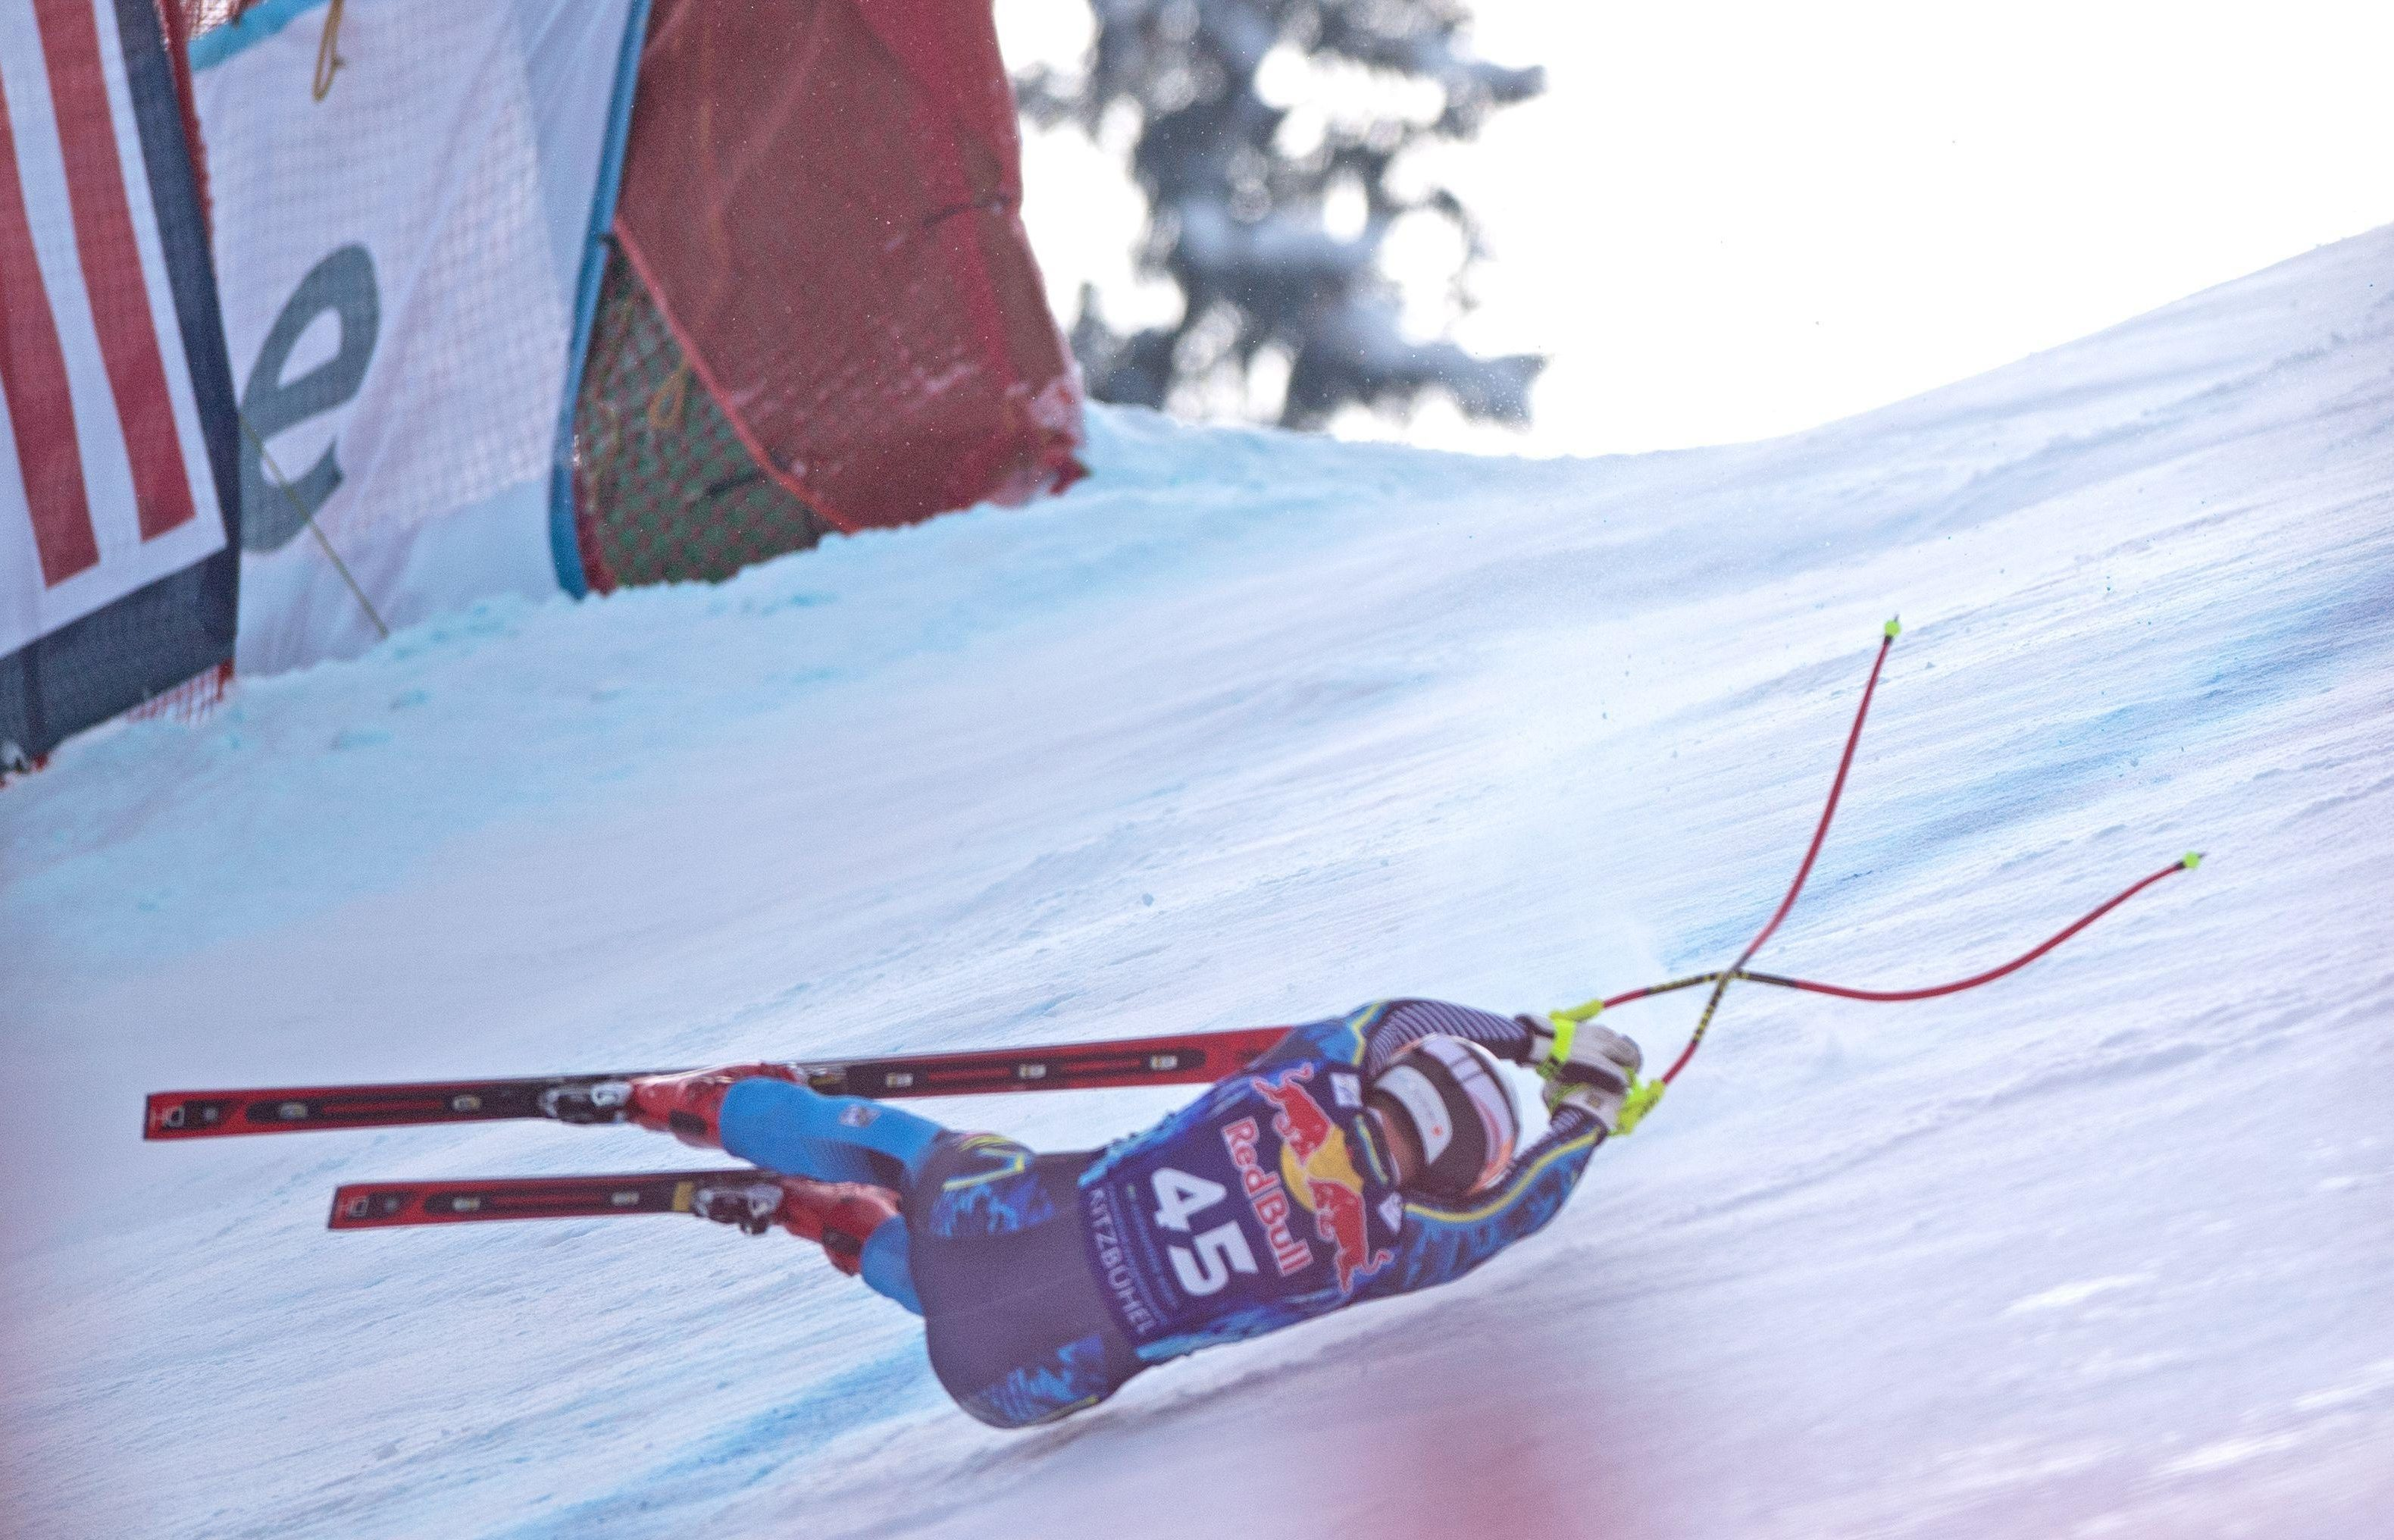 The Swede was participating in the classic downhill when he lost control on a turn